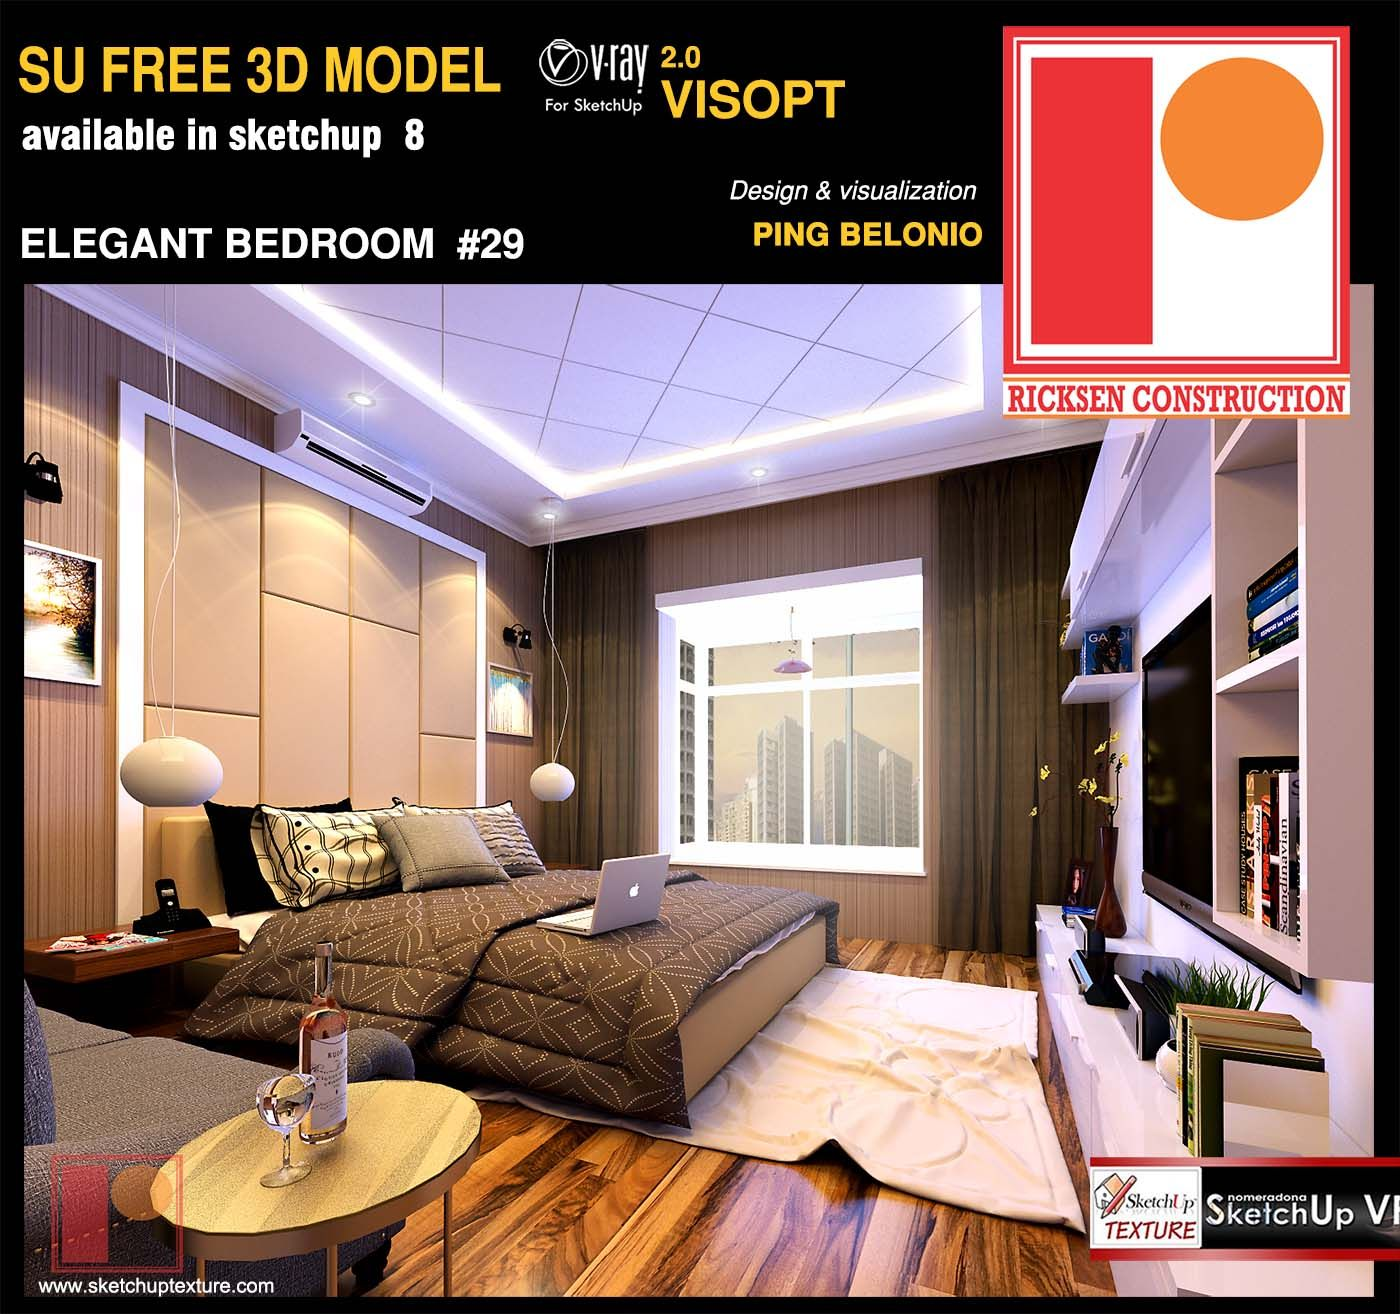 Texture Seamless Sketchup Models Vray Podium And Photoshop Tutorials Resources Trends Architecture Interior Design